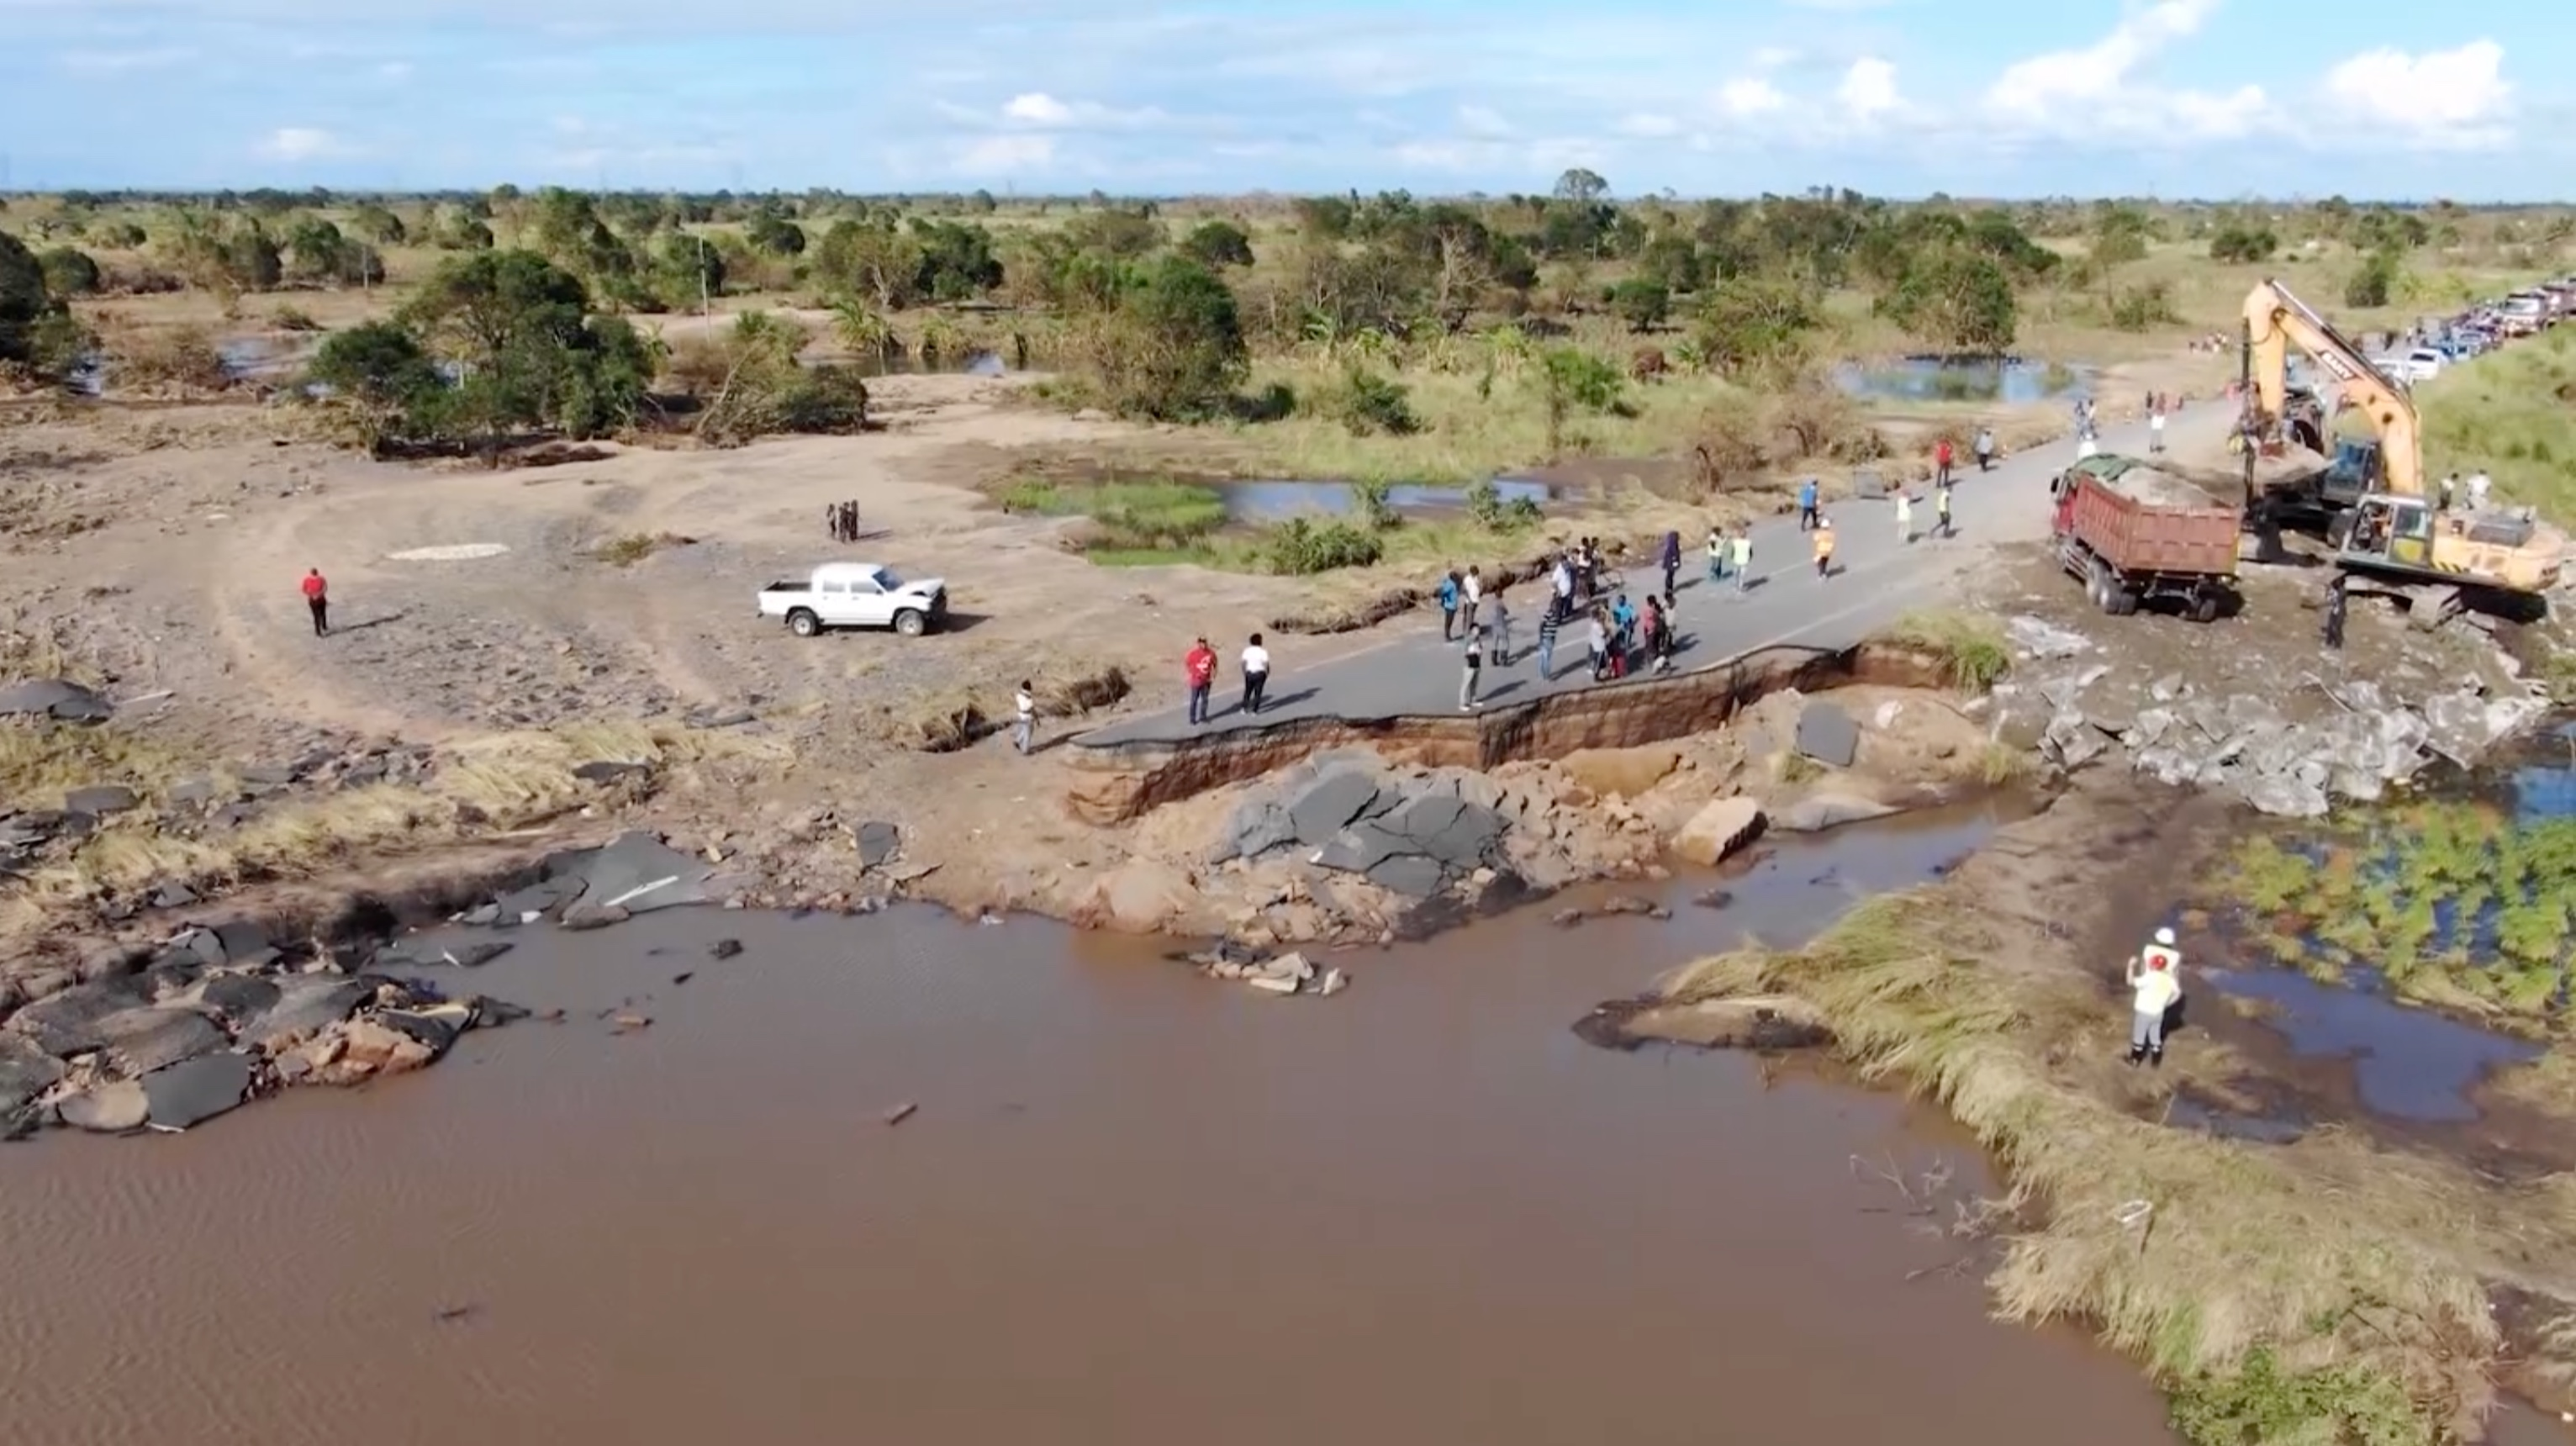 Cyclone Idai knocked this thriving port city into an earlier age